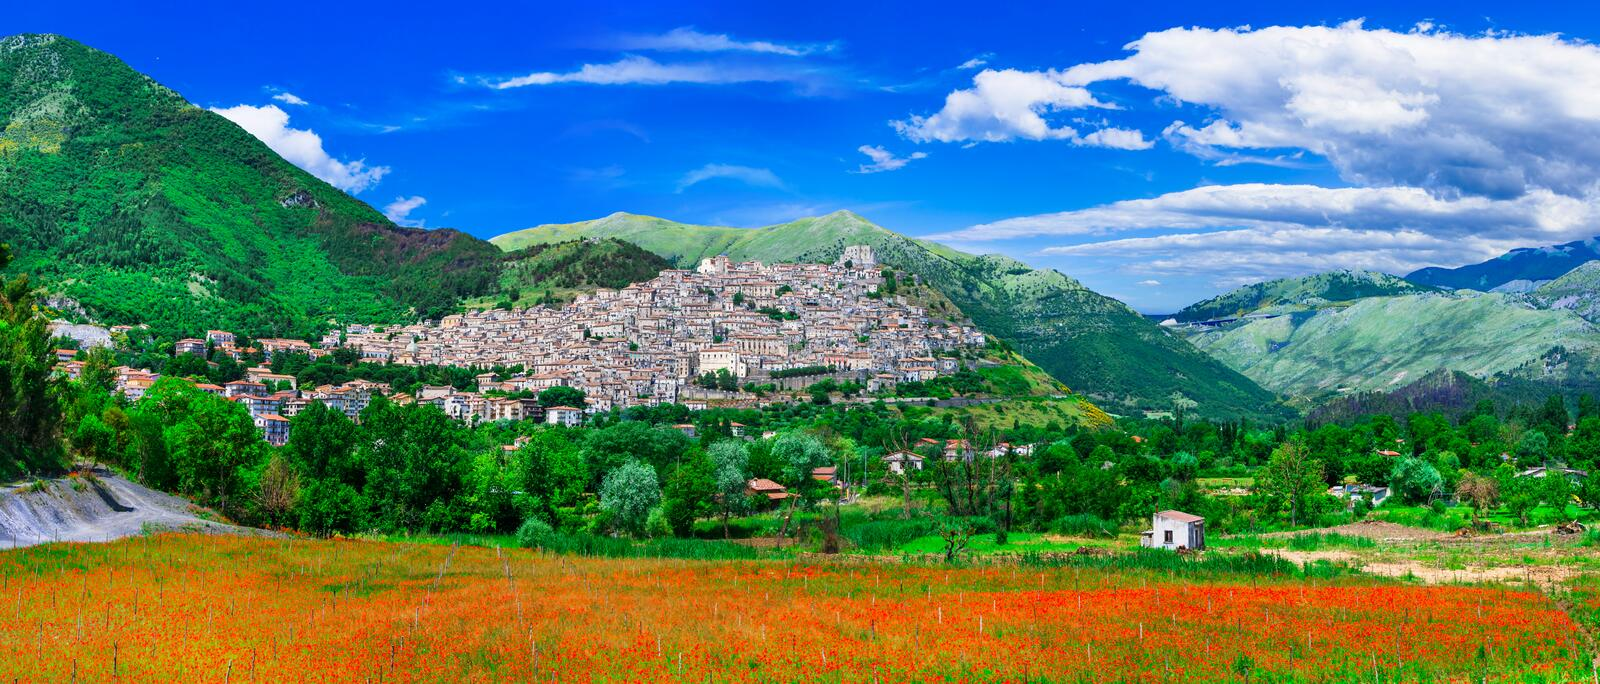 Morano Calabro - one of the most beautiful villages of Italy. Impressive Morano Calabro village,view with flowers and mountains.Calabria,Italy royalty free stock images